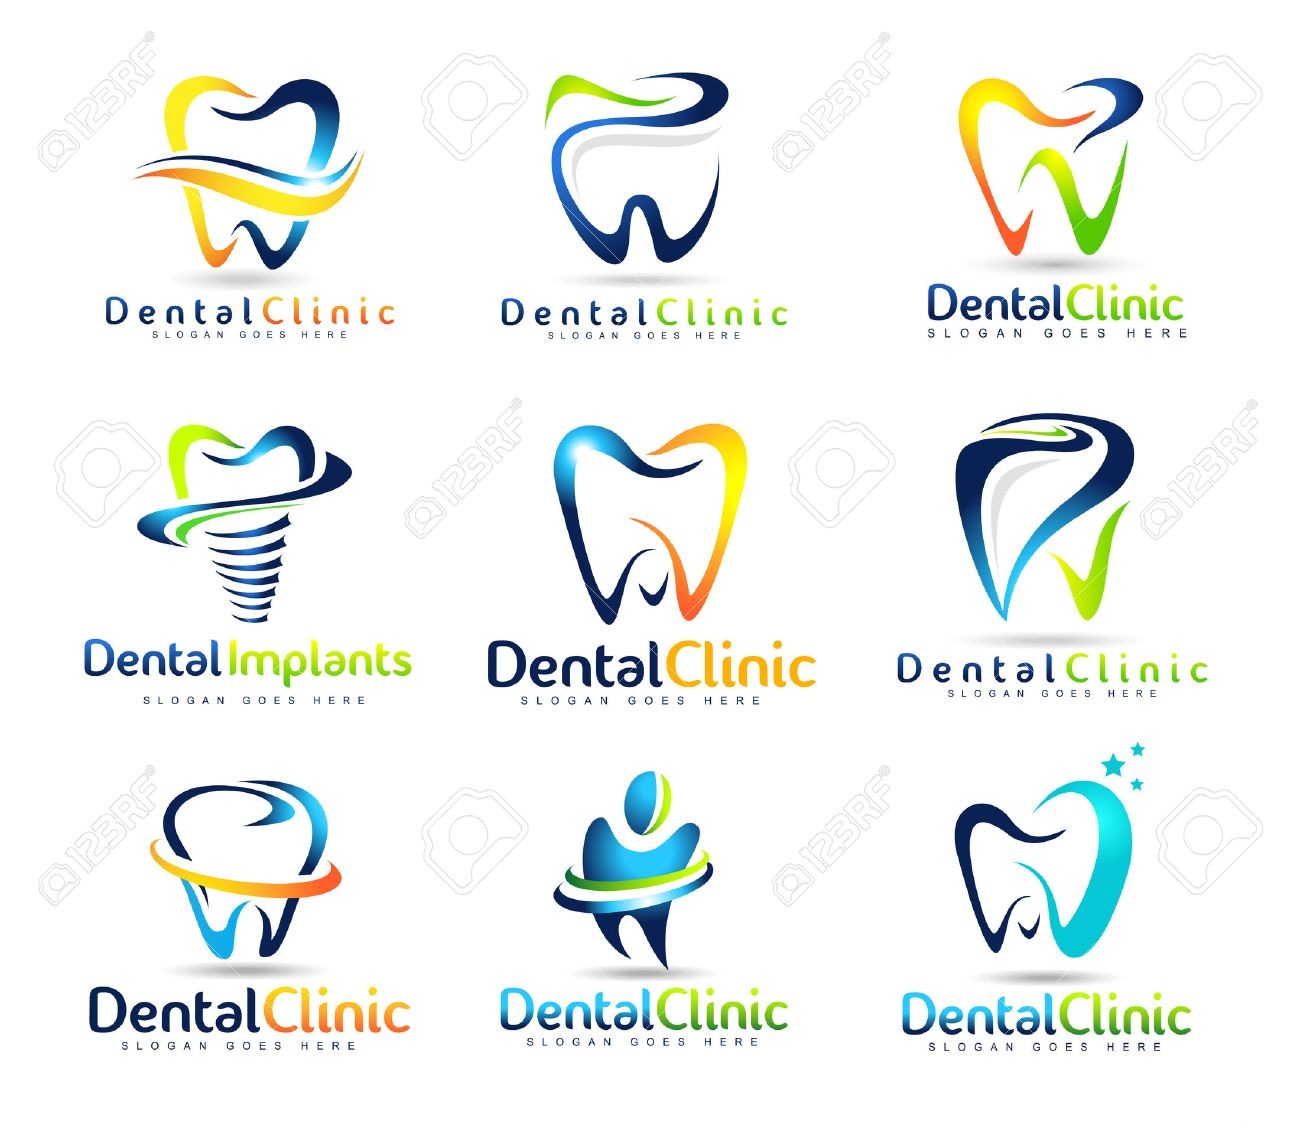 Dental Logo Design. Dentist Logo. Dental Clinic Creative Company ...